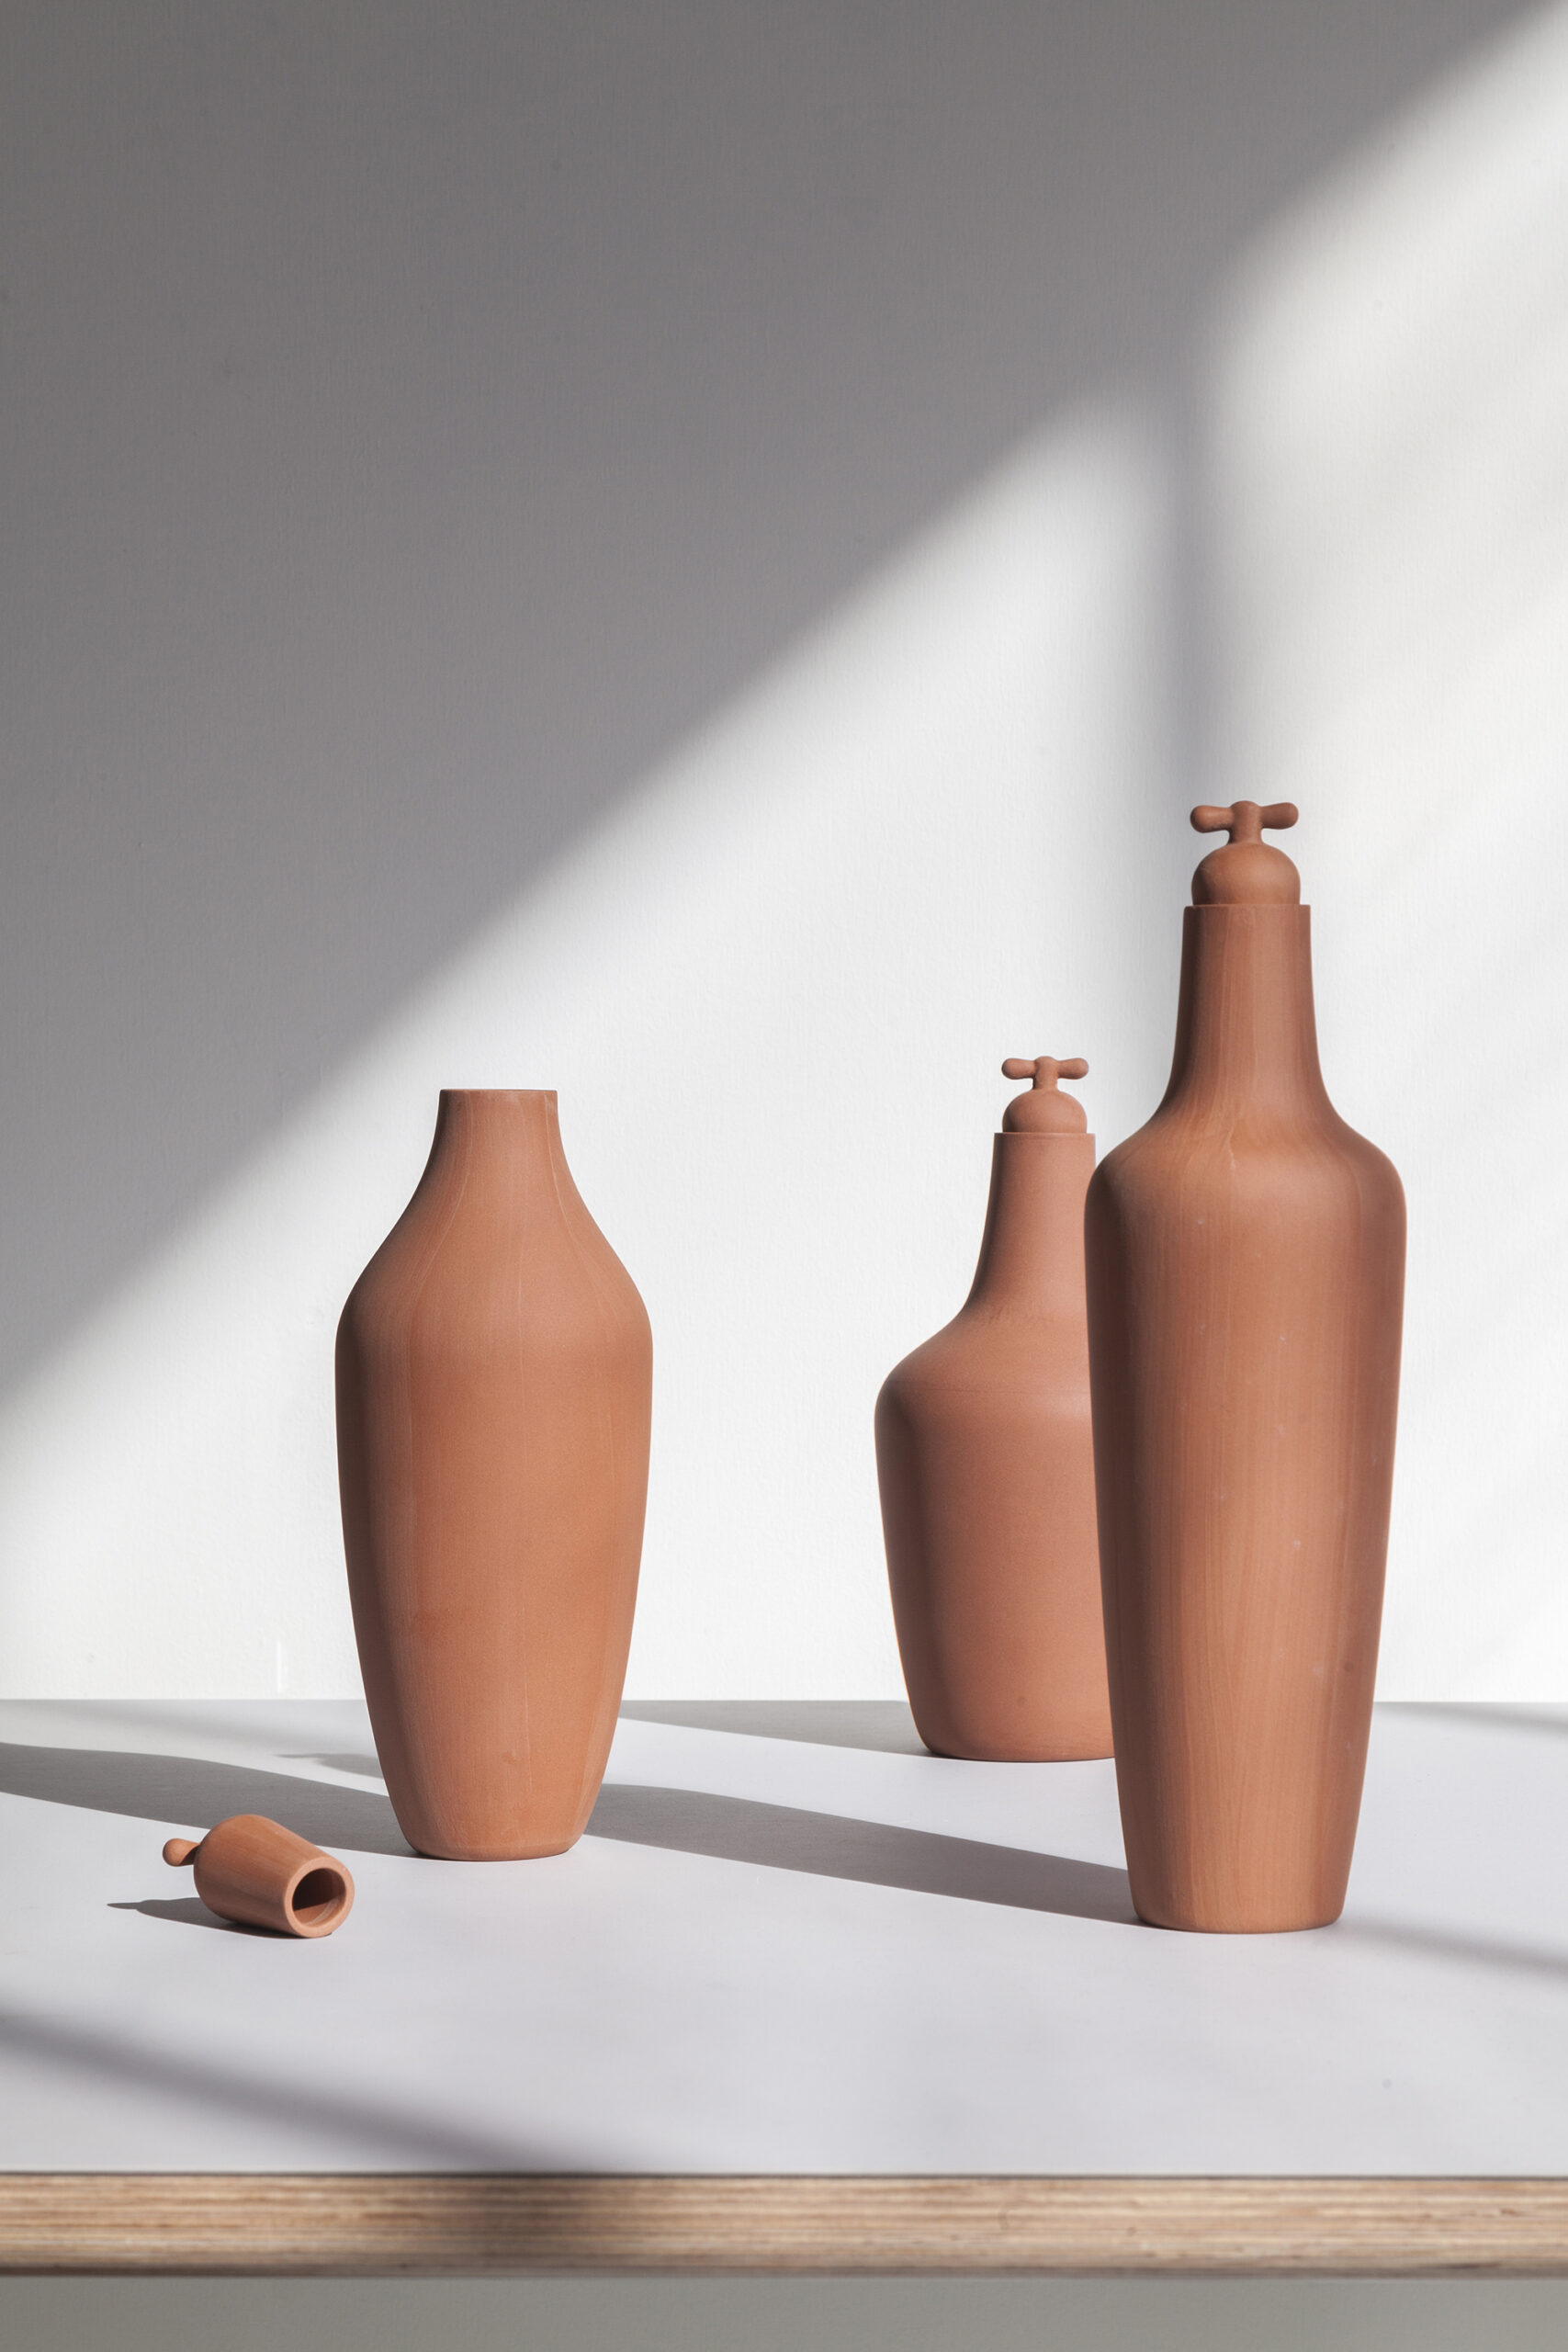 Tap Water Carafe by Lotte de Raadt (setting, image by Vij5) 01